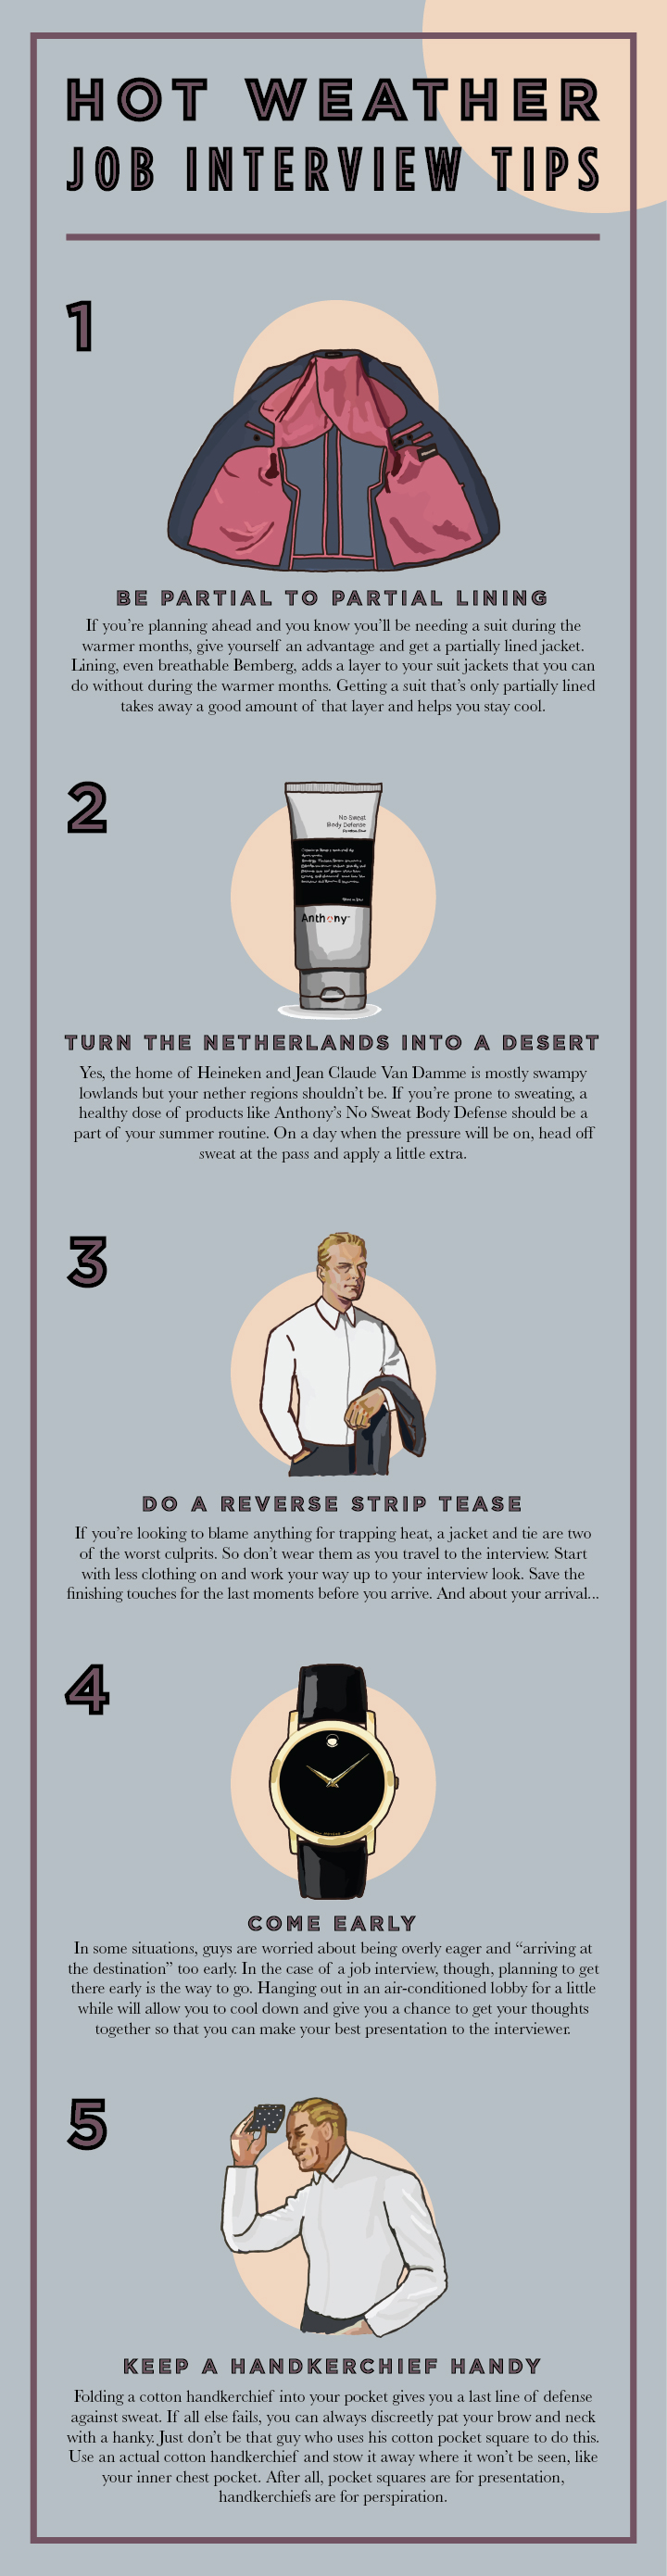 what to wear for interview in hot weather